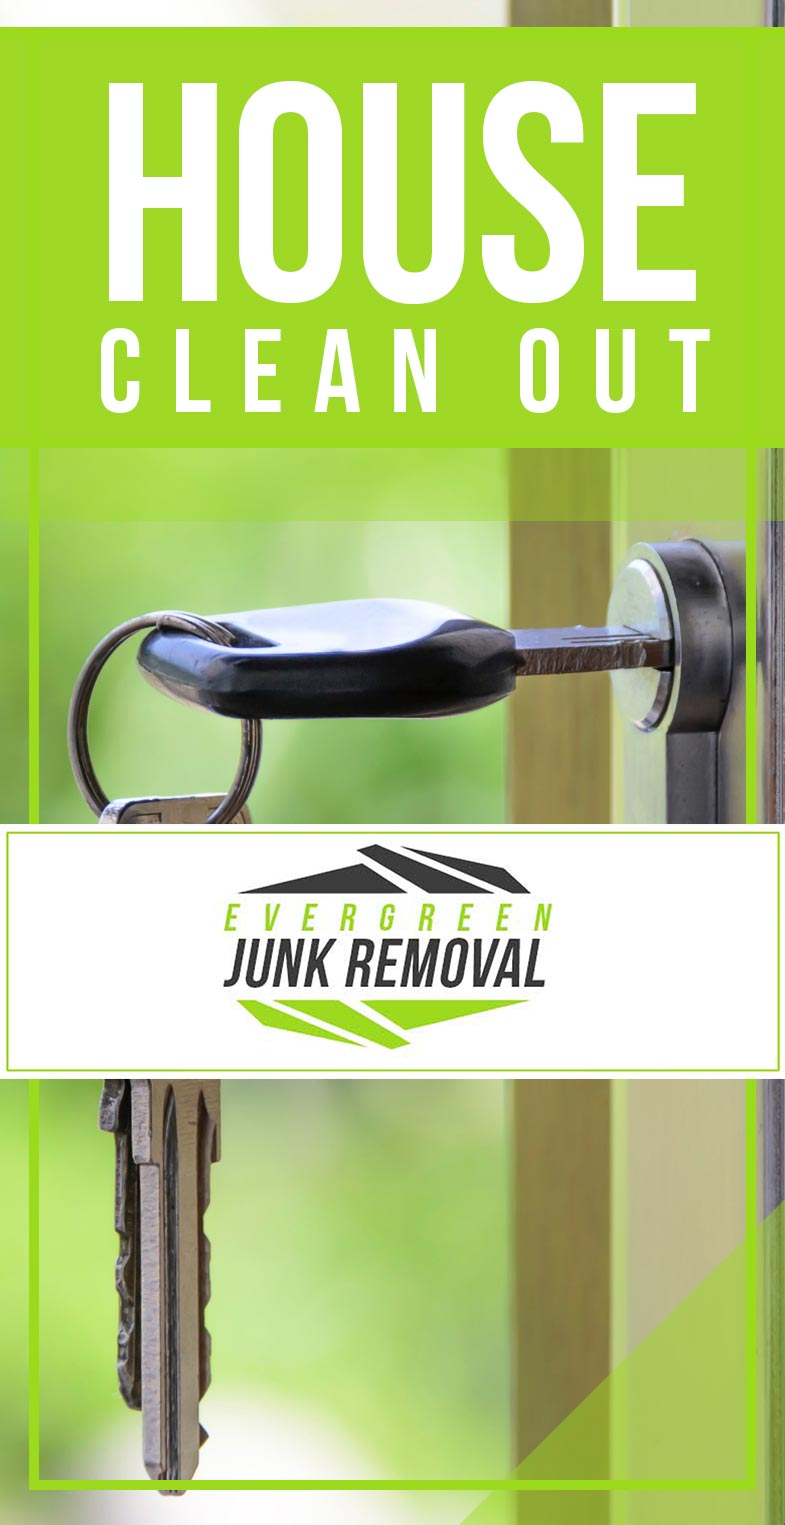 Junk Removal Wilton Manors House Clean Out